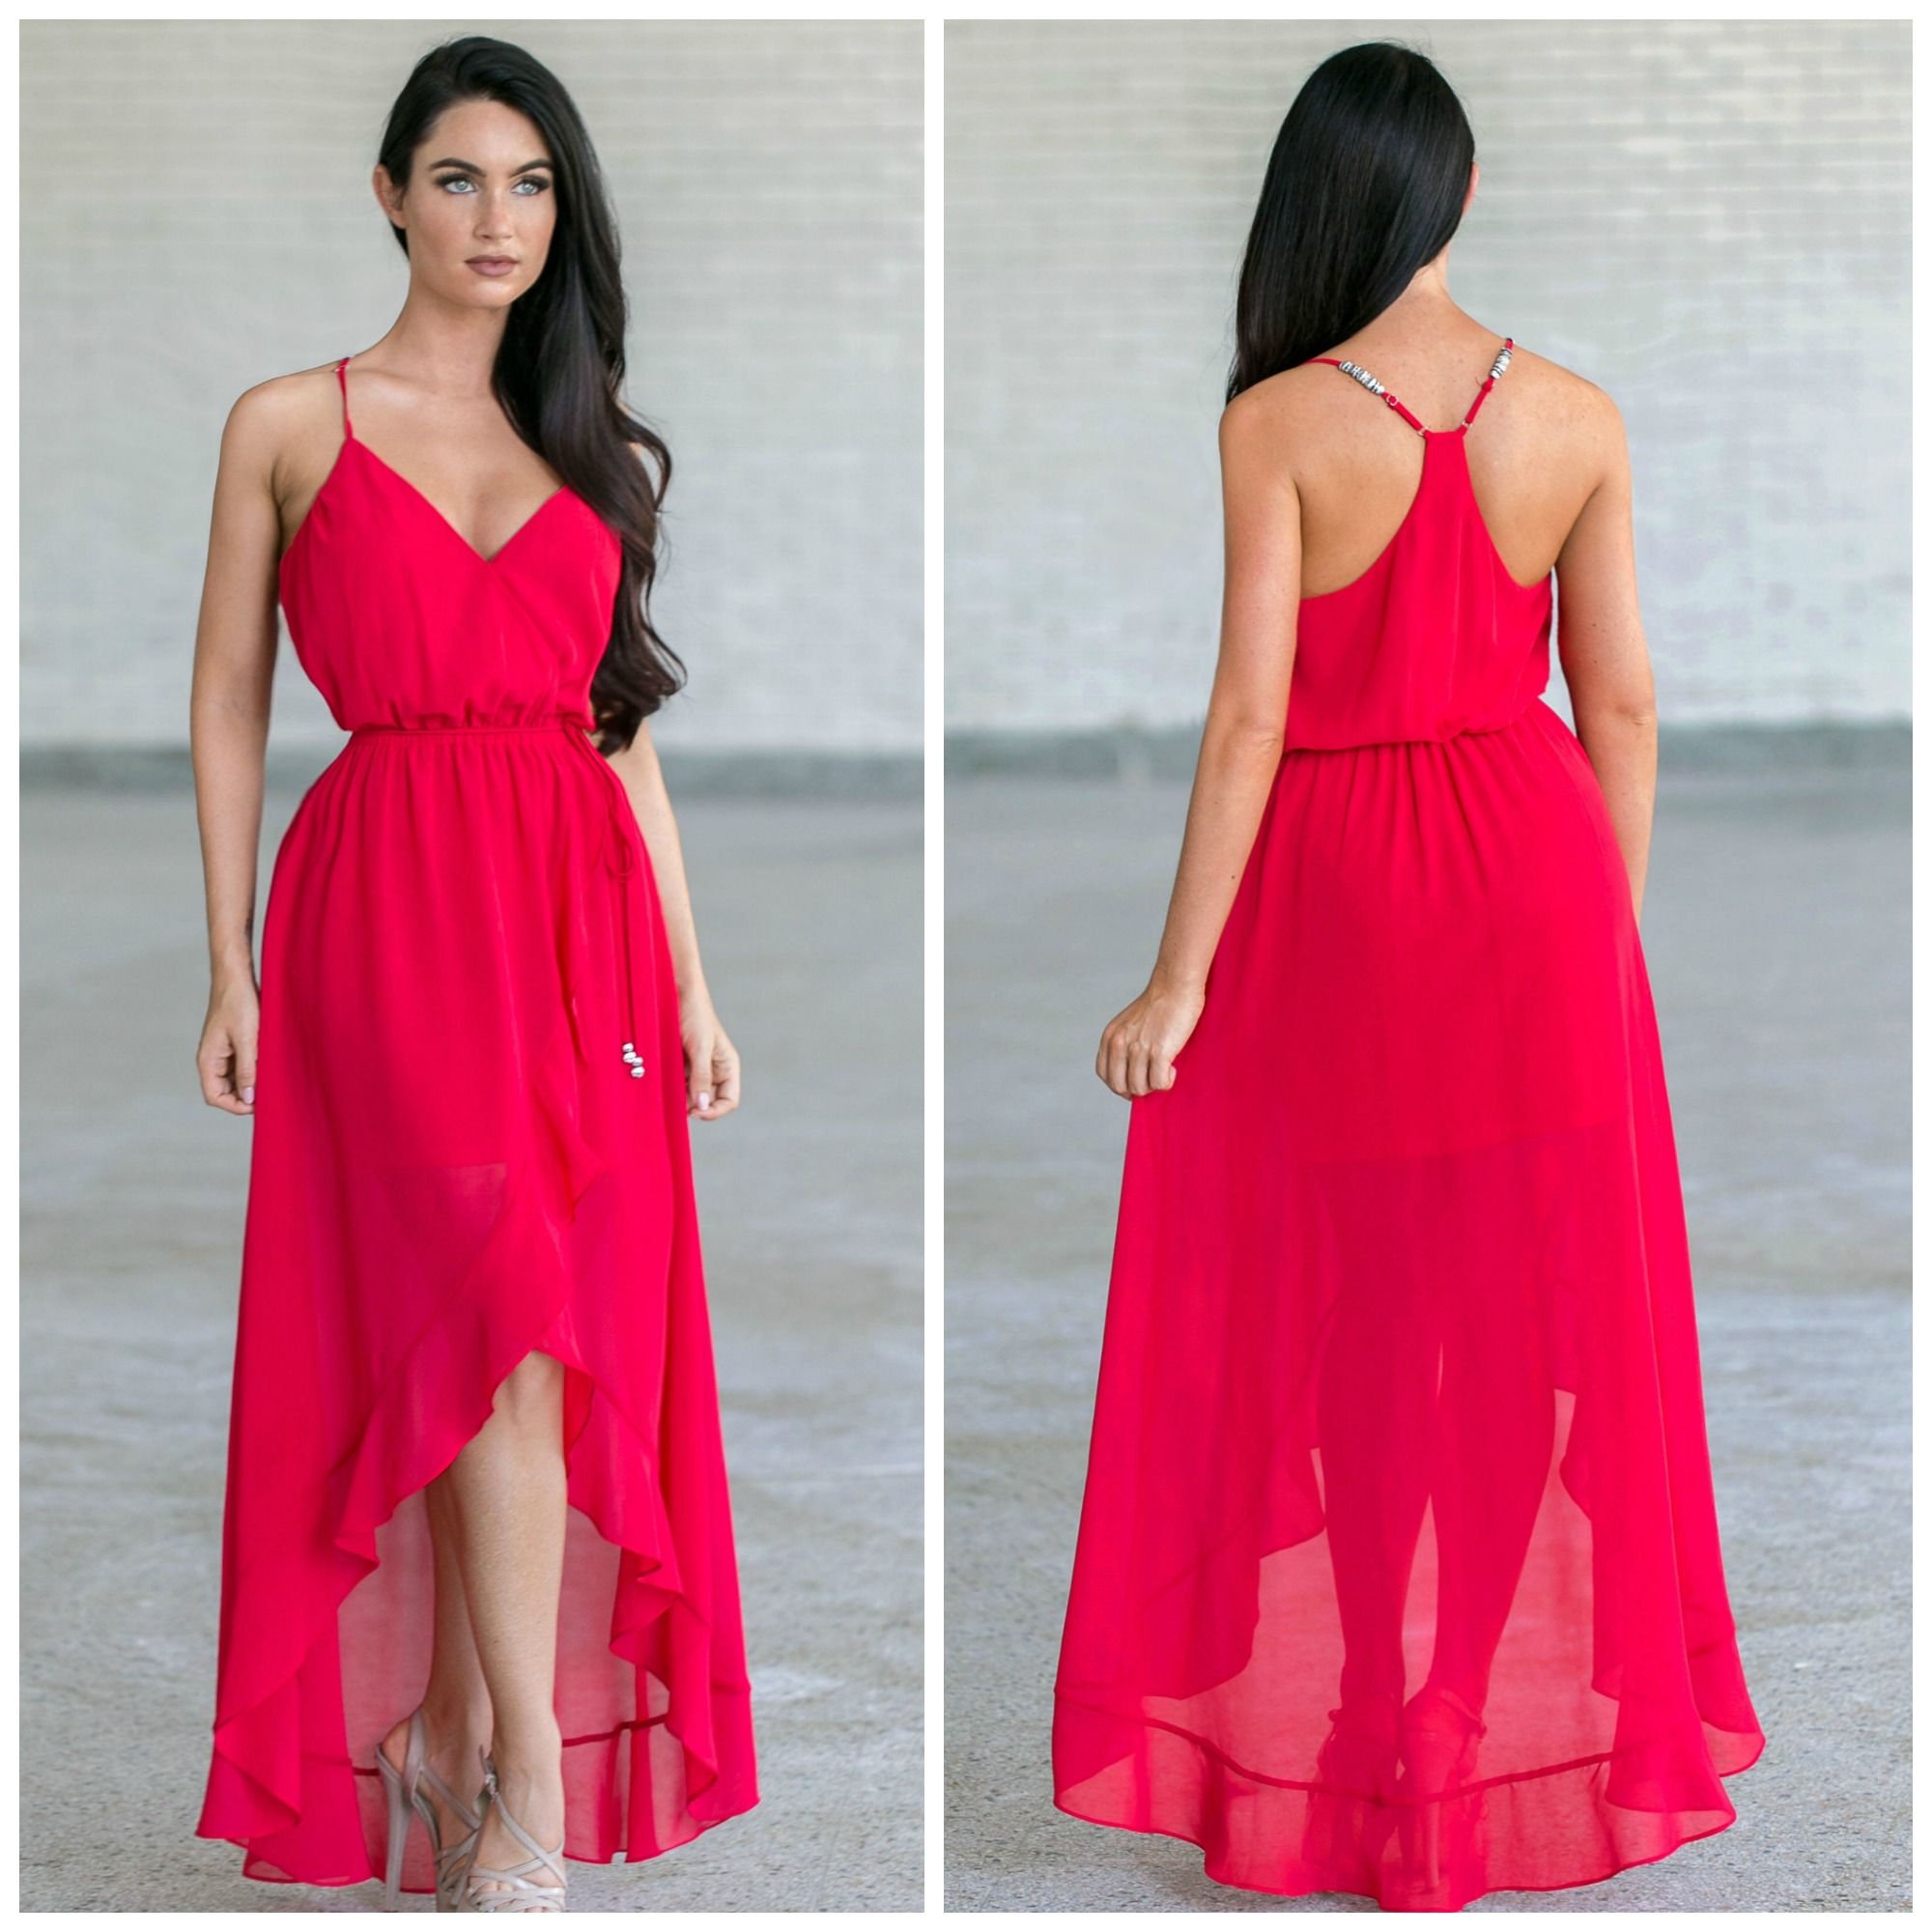 This red dress has a high low cut: http://ss1.us/a/2CSRea4m ...